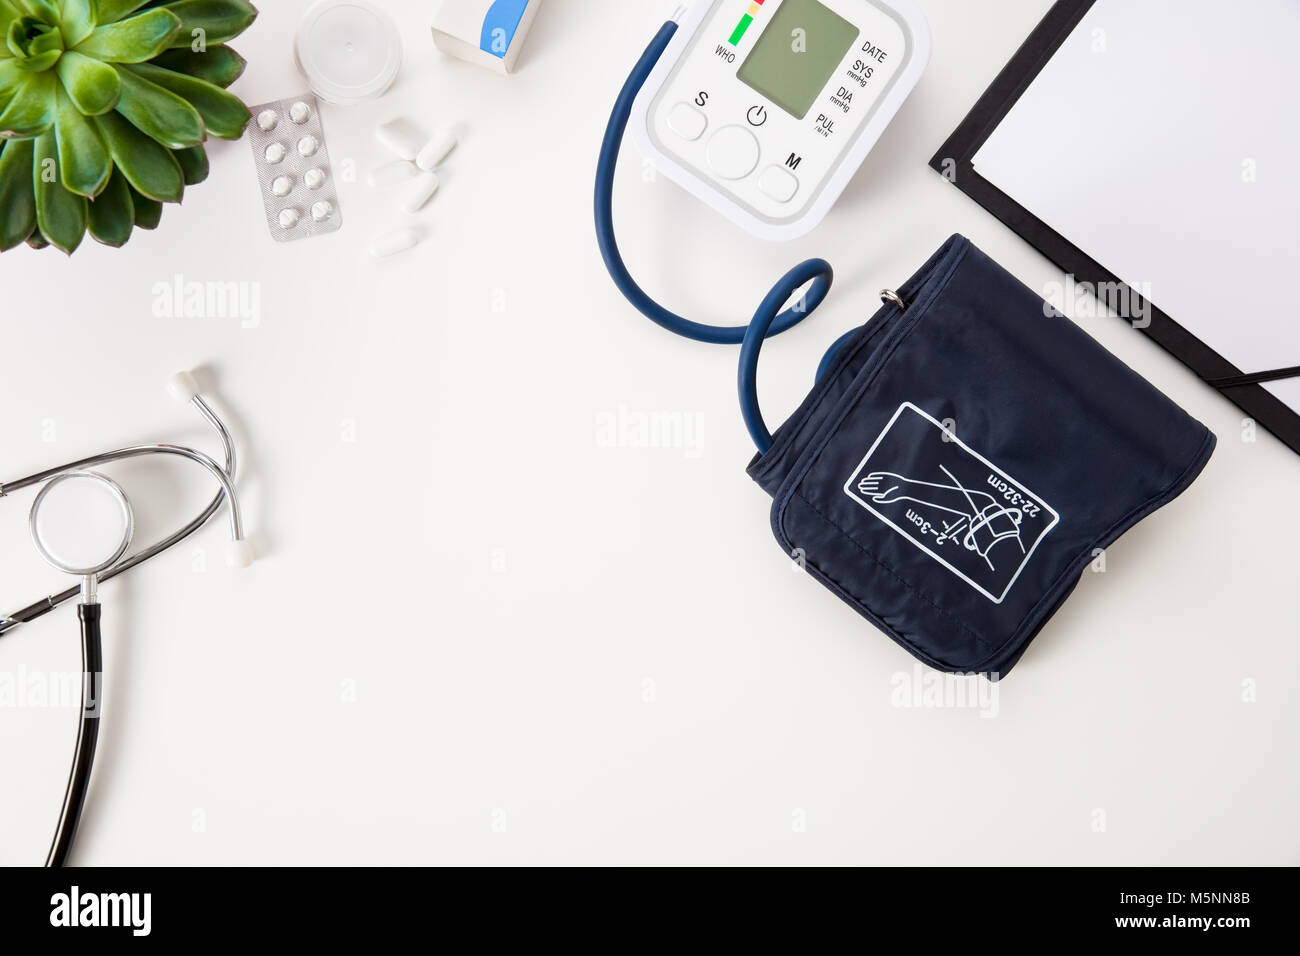 Blood Pressure Machine With Stethoscope And Clipboard On White T - Stock Image